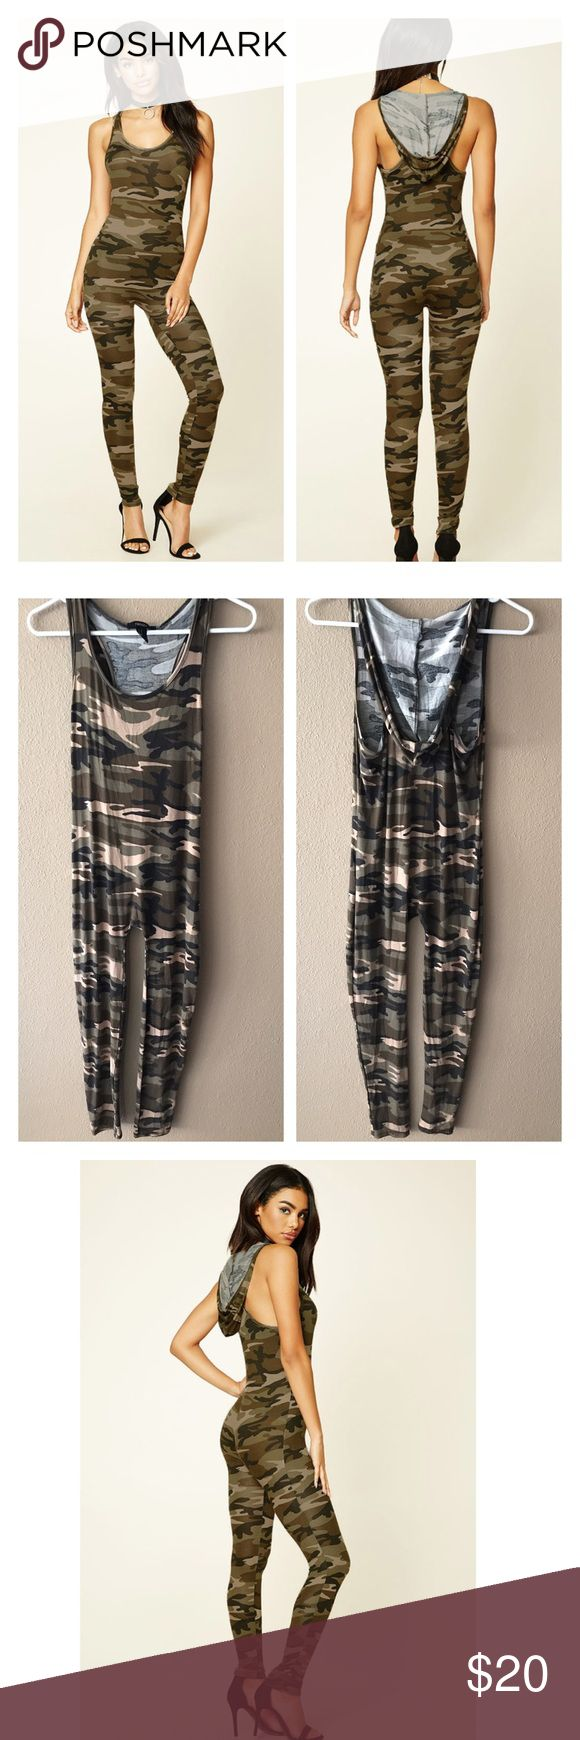 "Hooded camouflage jumpsuit Soft knitted hooded jumpsuit featuring an allover camo print, racerback, scoop neckline, and fitted silhouette. Bust 36"", inseam 27"", length 45"". Rayon & spandex. NWT medium Forever 21 Pants Jumpsuits & Rompers"